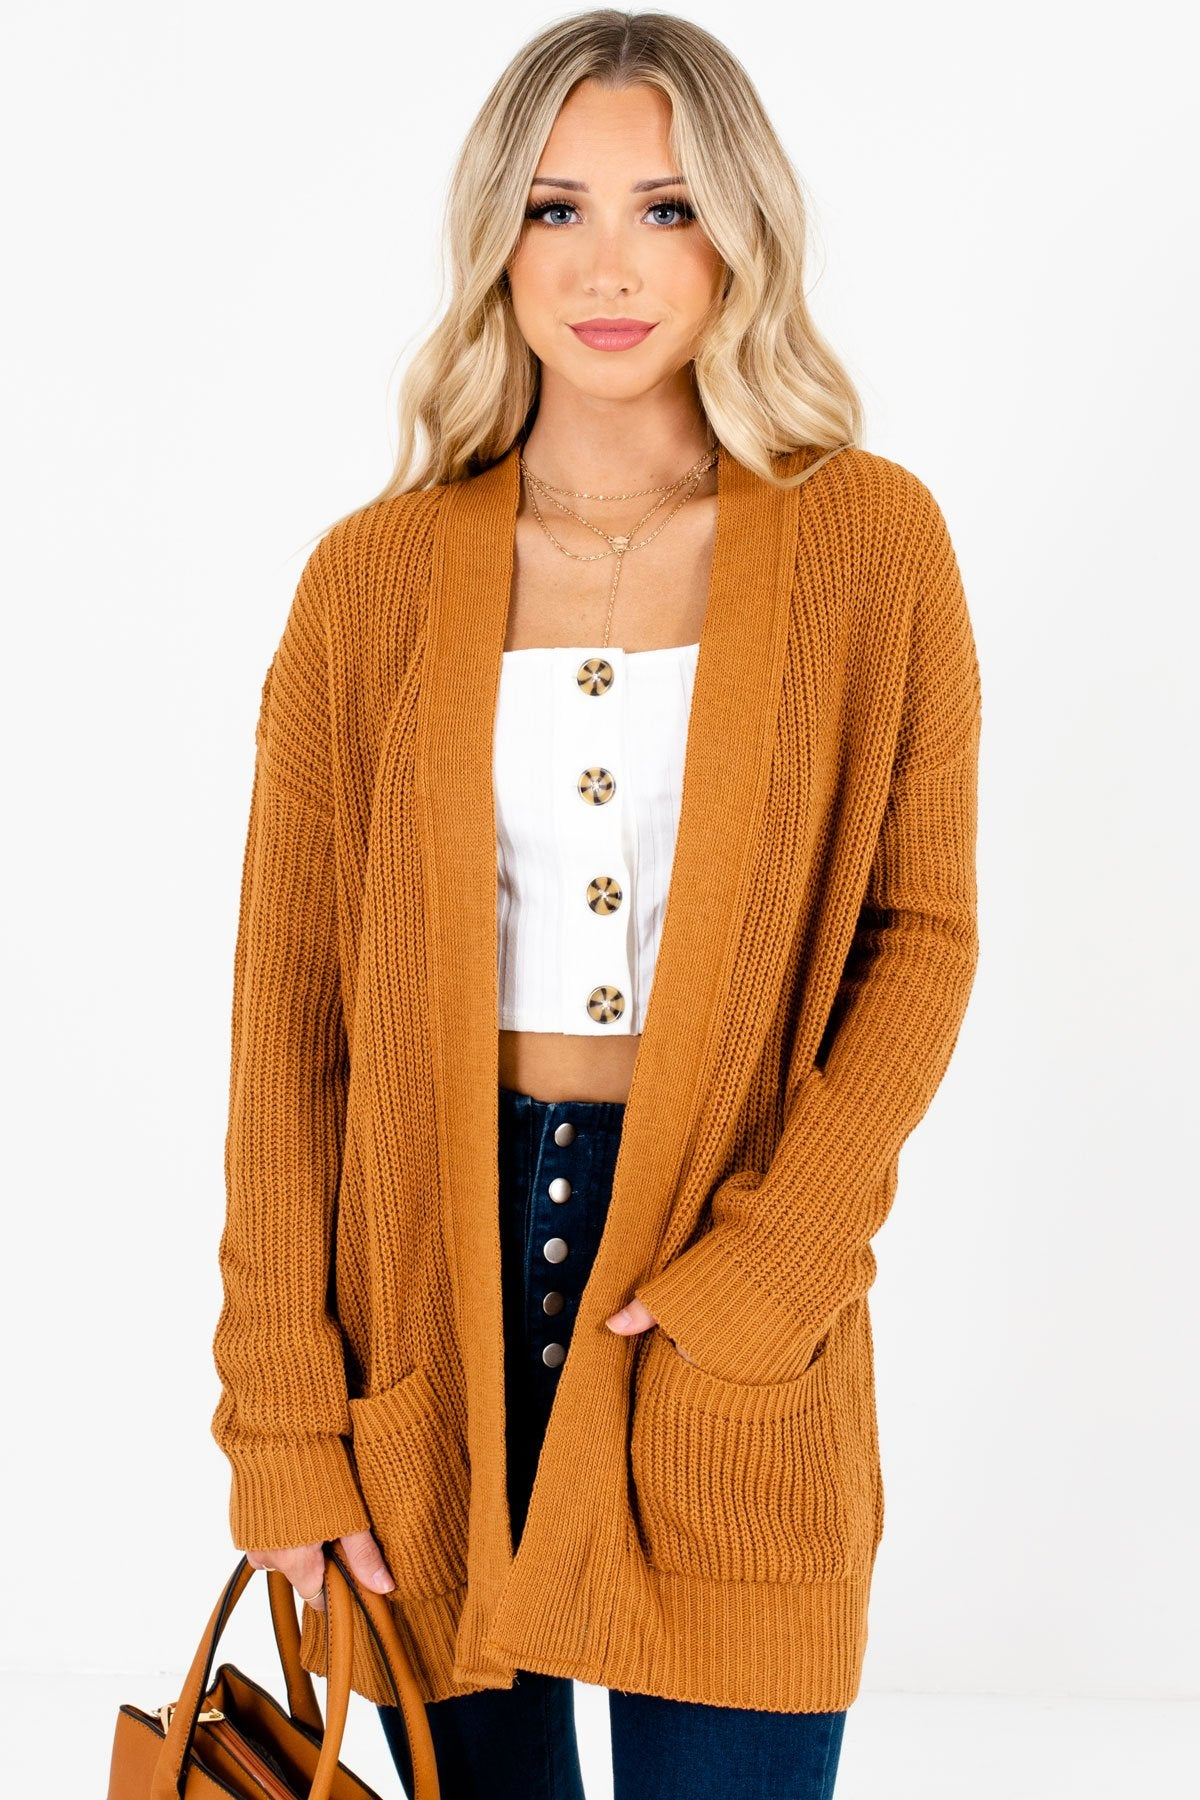 Tawny Orange High-Quality Knit Material Boutique Cardigans for Women